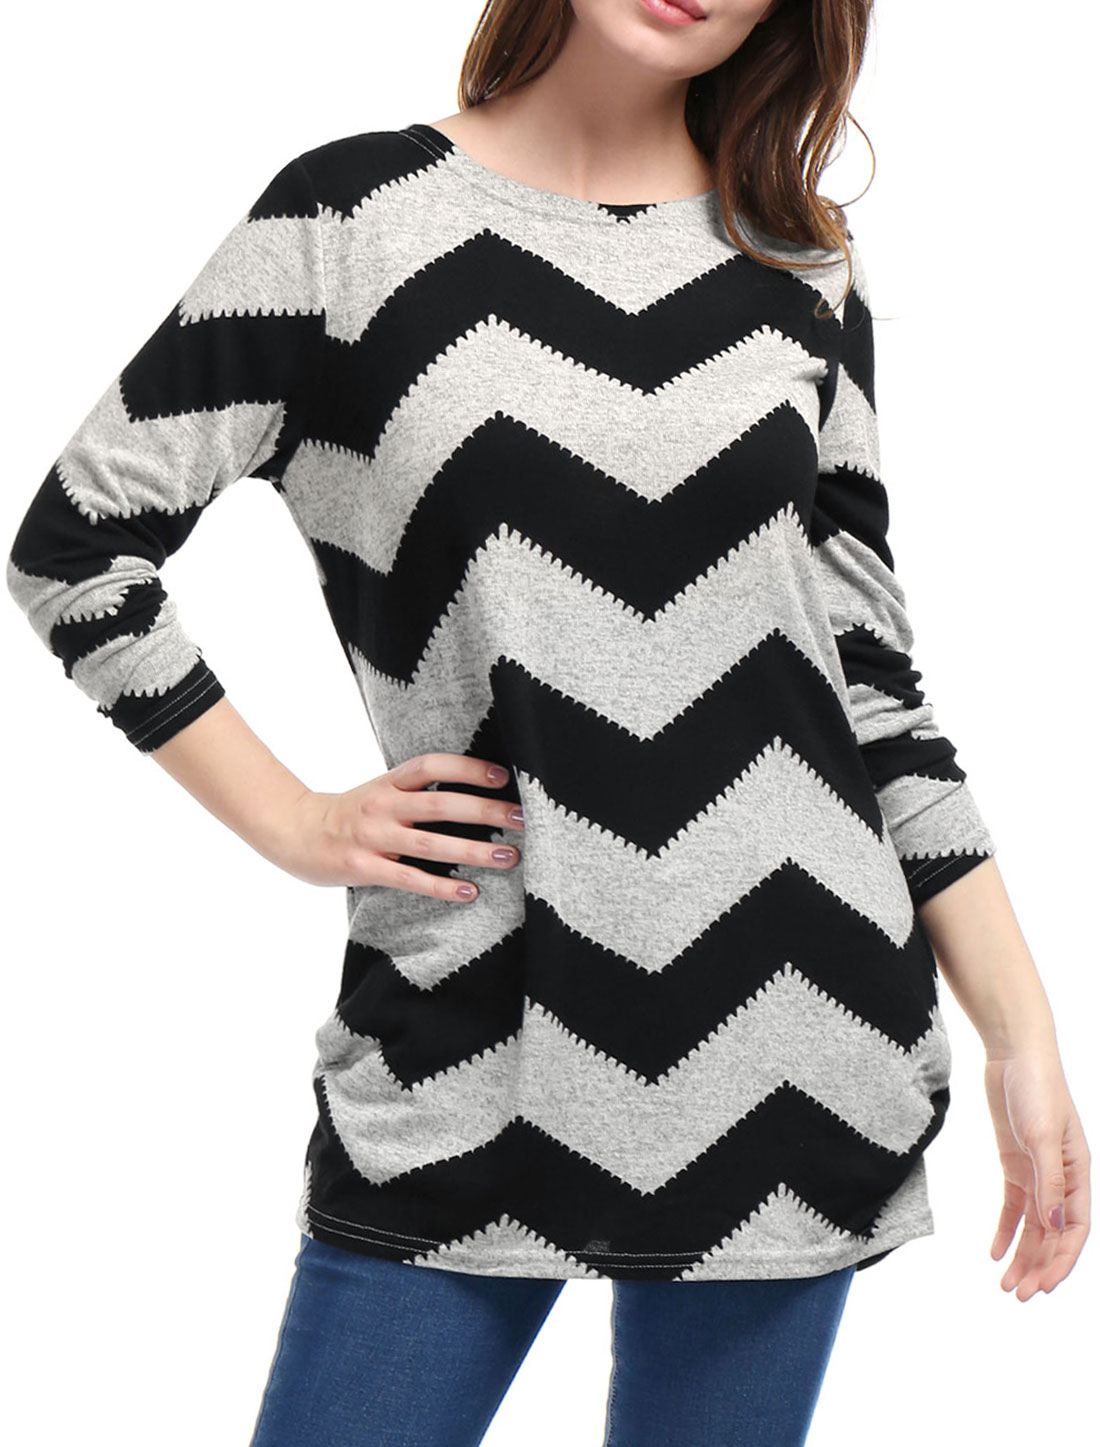 Woman Zig-Zag Pattern Knitted Relax Fit Tunic Top Black Gray L